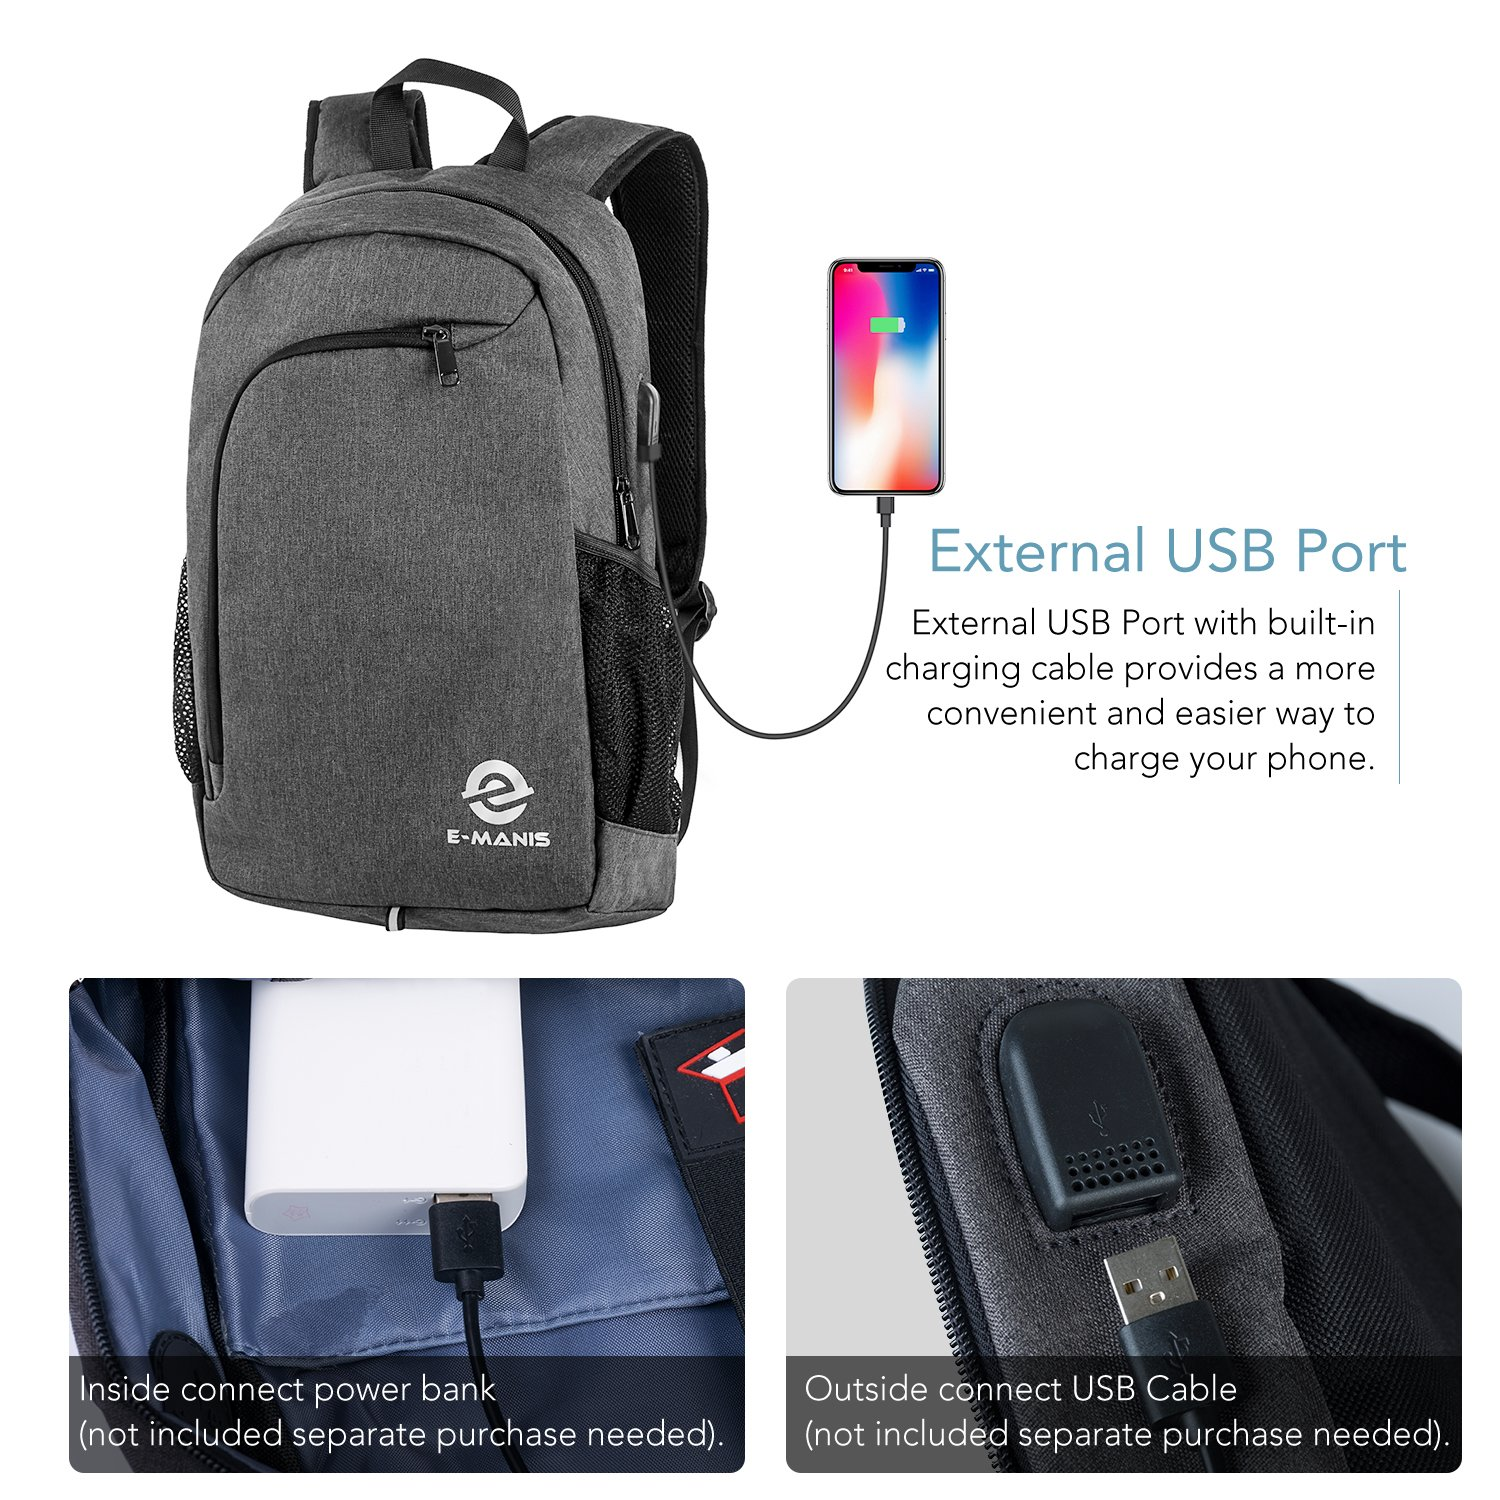 Amazon.com: Laptop Backpack,Business Anti Theft Slim Durable Laptops Backpack with USB Charging Port,Water Resistant College School Computer Bag for Women ...